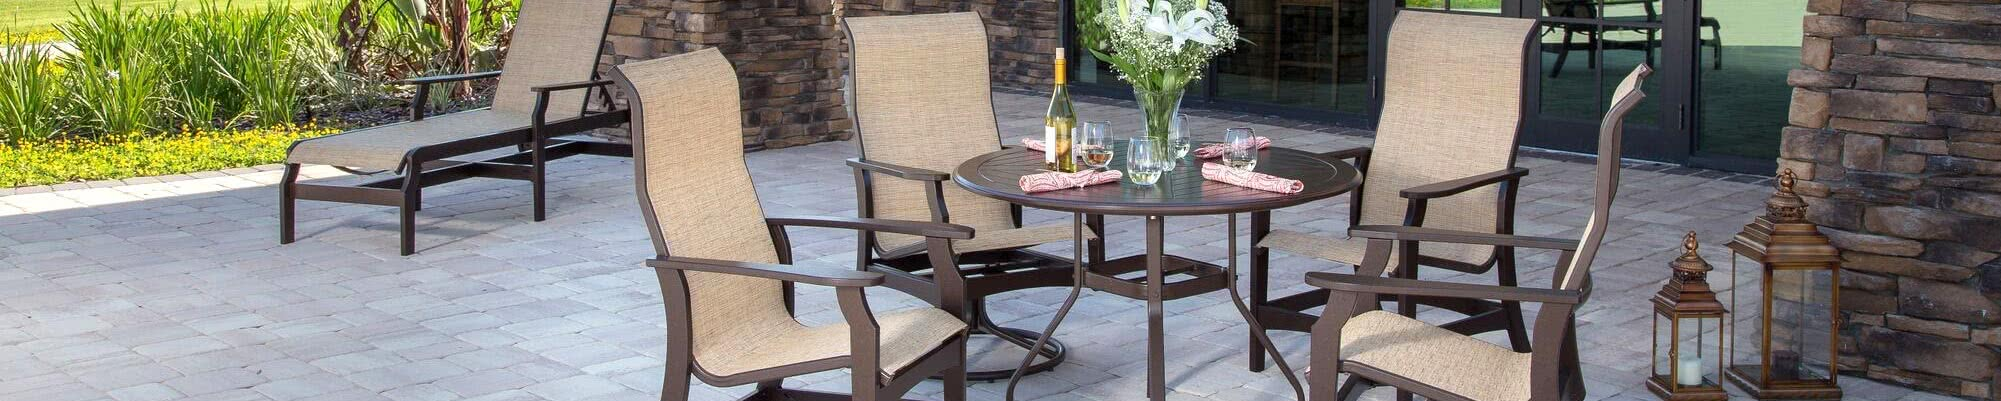 hawthorne oversized sling chairs mid century modern dining room replacement slings for patio patiosling chair banner 4